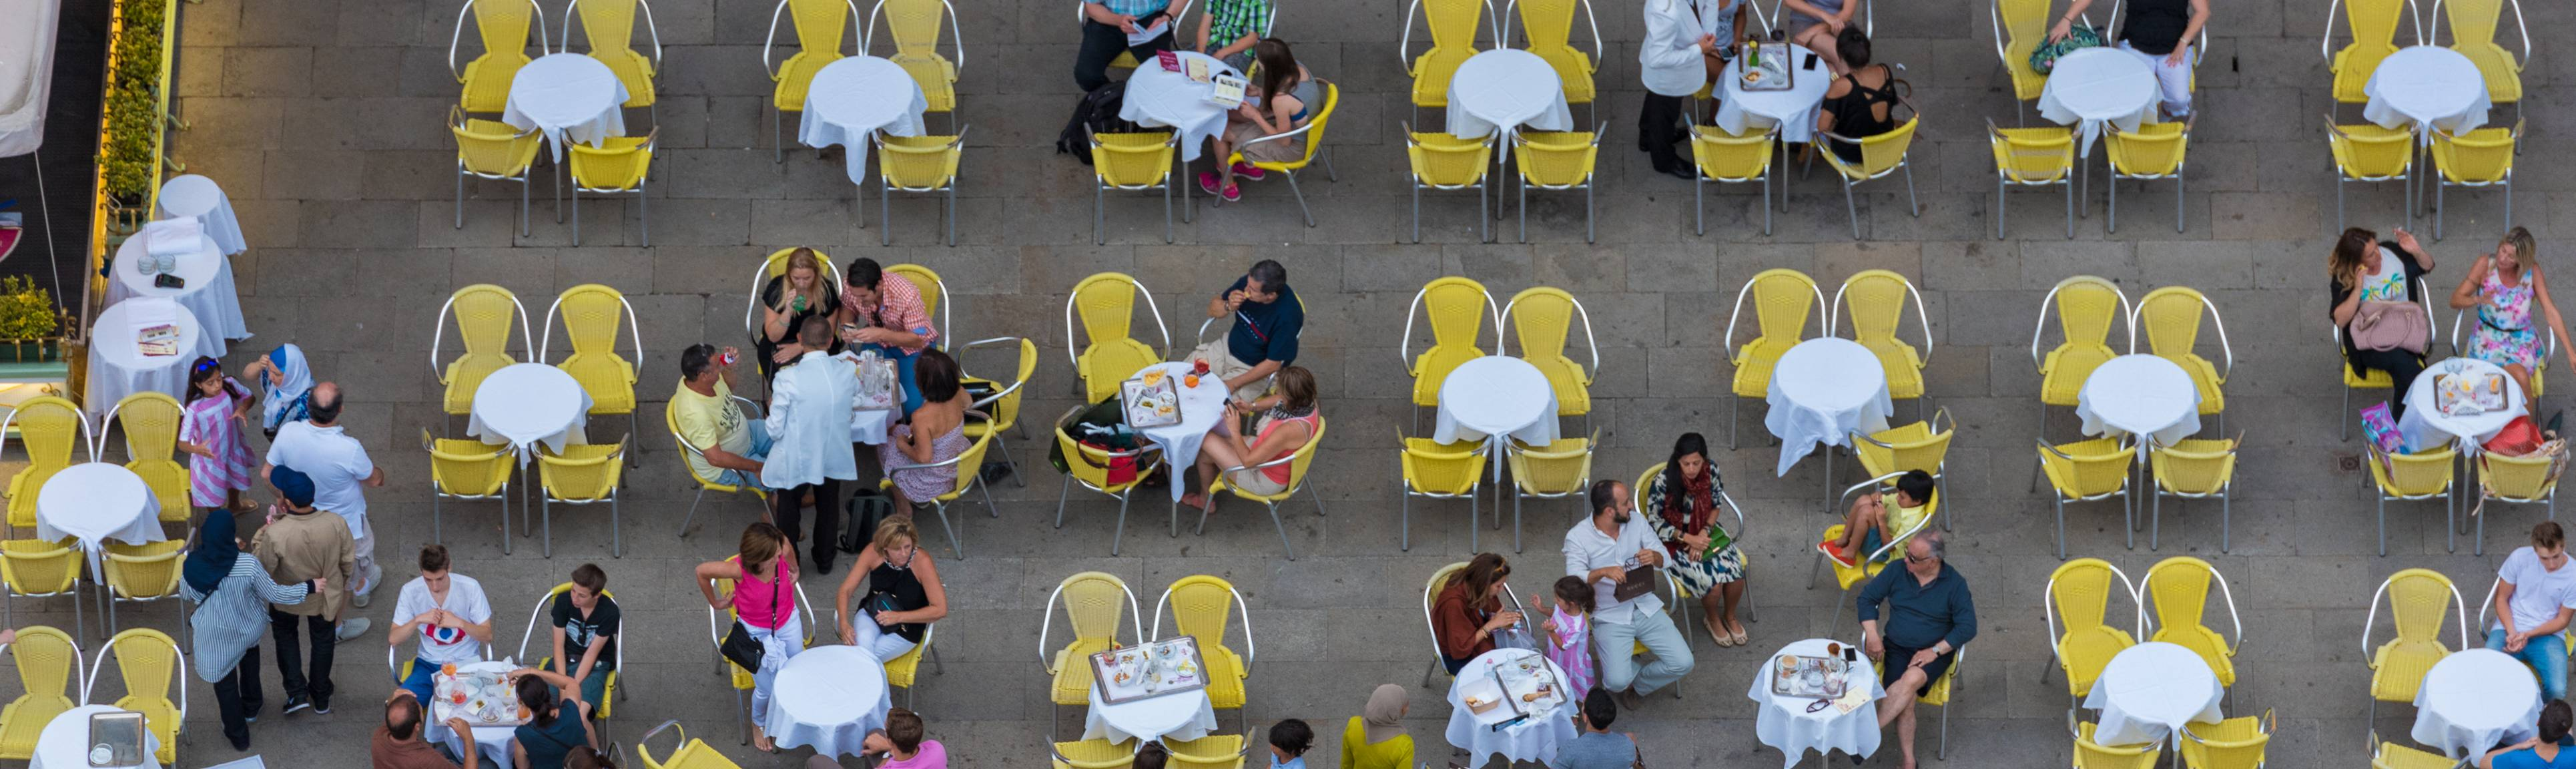 View from above of outdoor food court in Italy